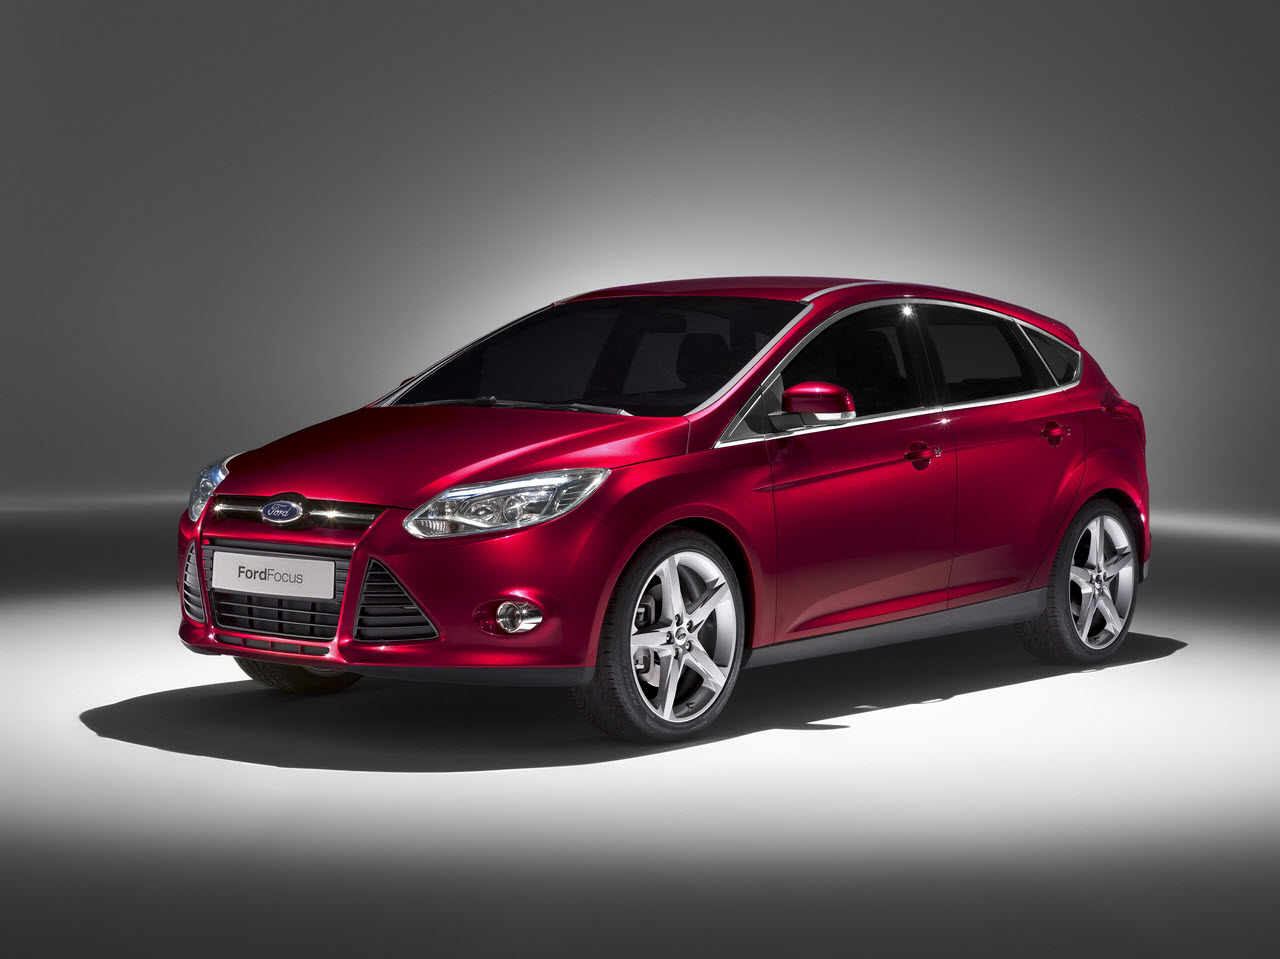 bikes and cars wallpapers 2011 ford focus red gallery. Black Bedroom Furniture Sets. Home Design Ideas